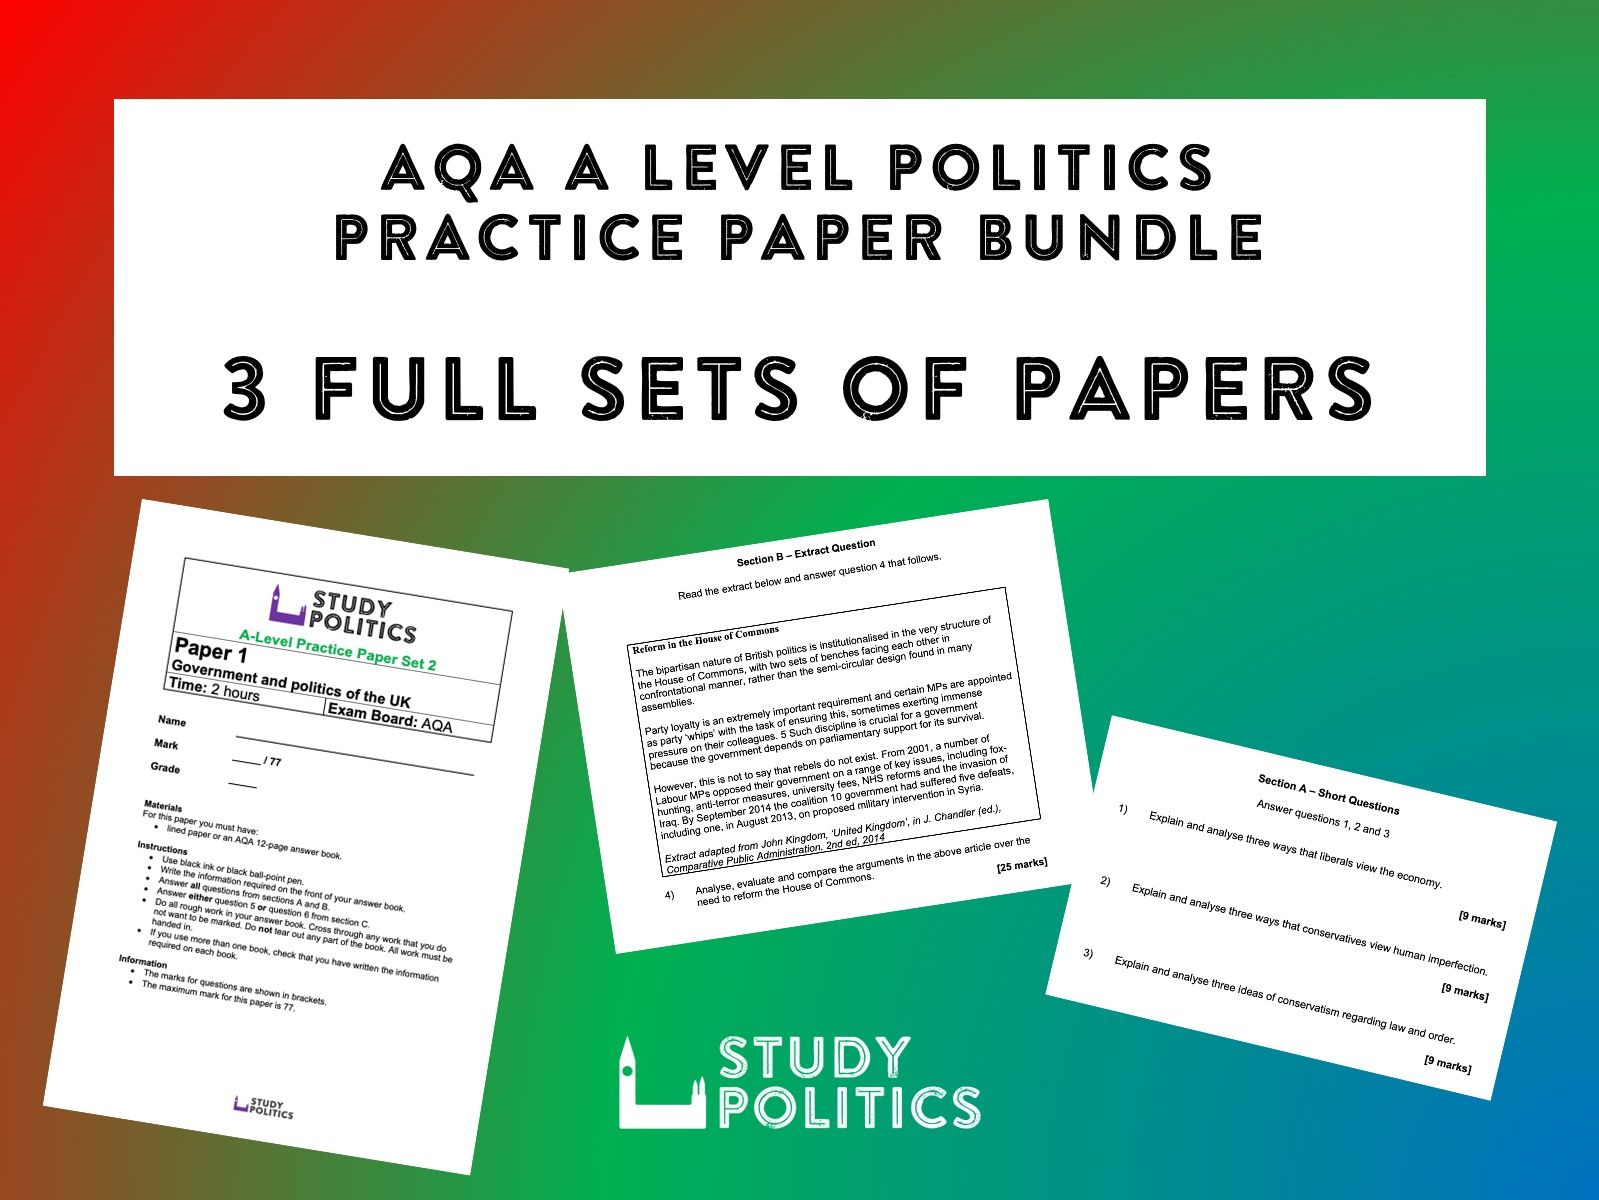 AQA A Level Politics Practice Paper Bundle - 3 Full Sets of Practice Papers